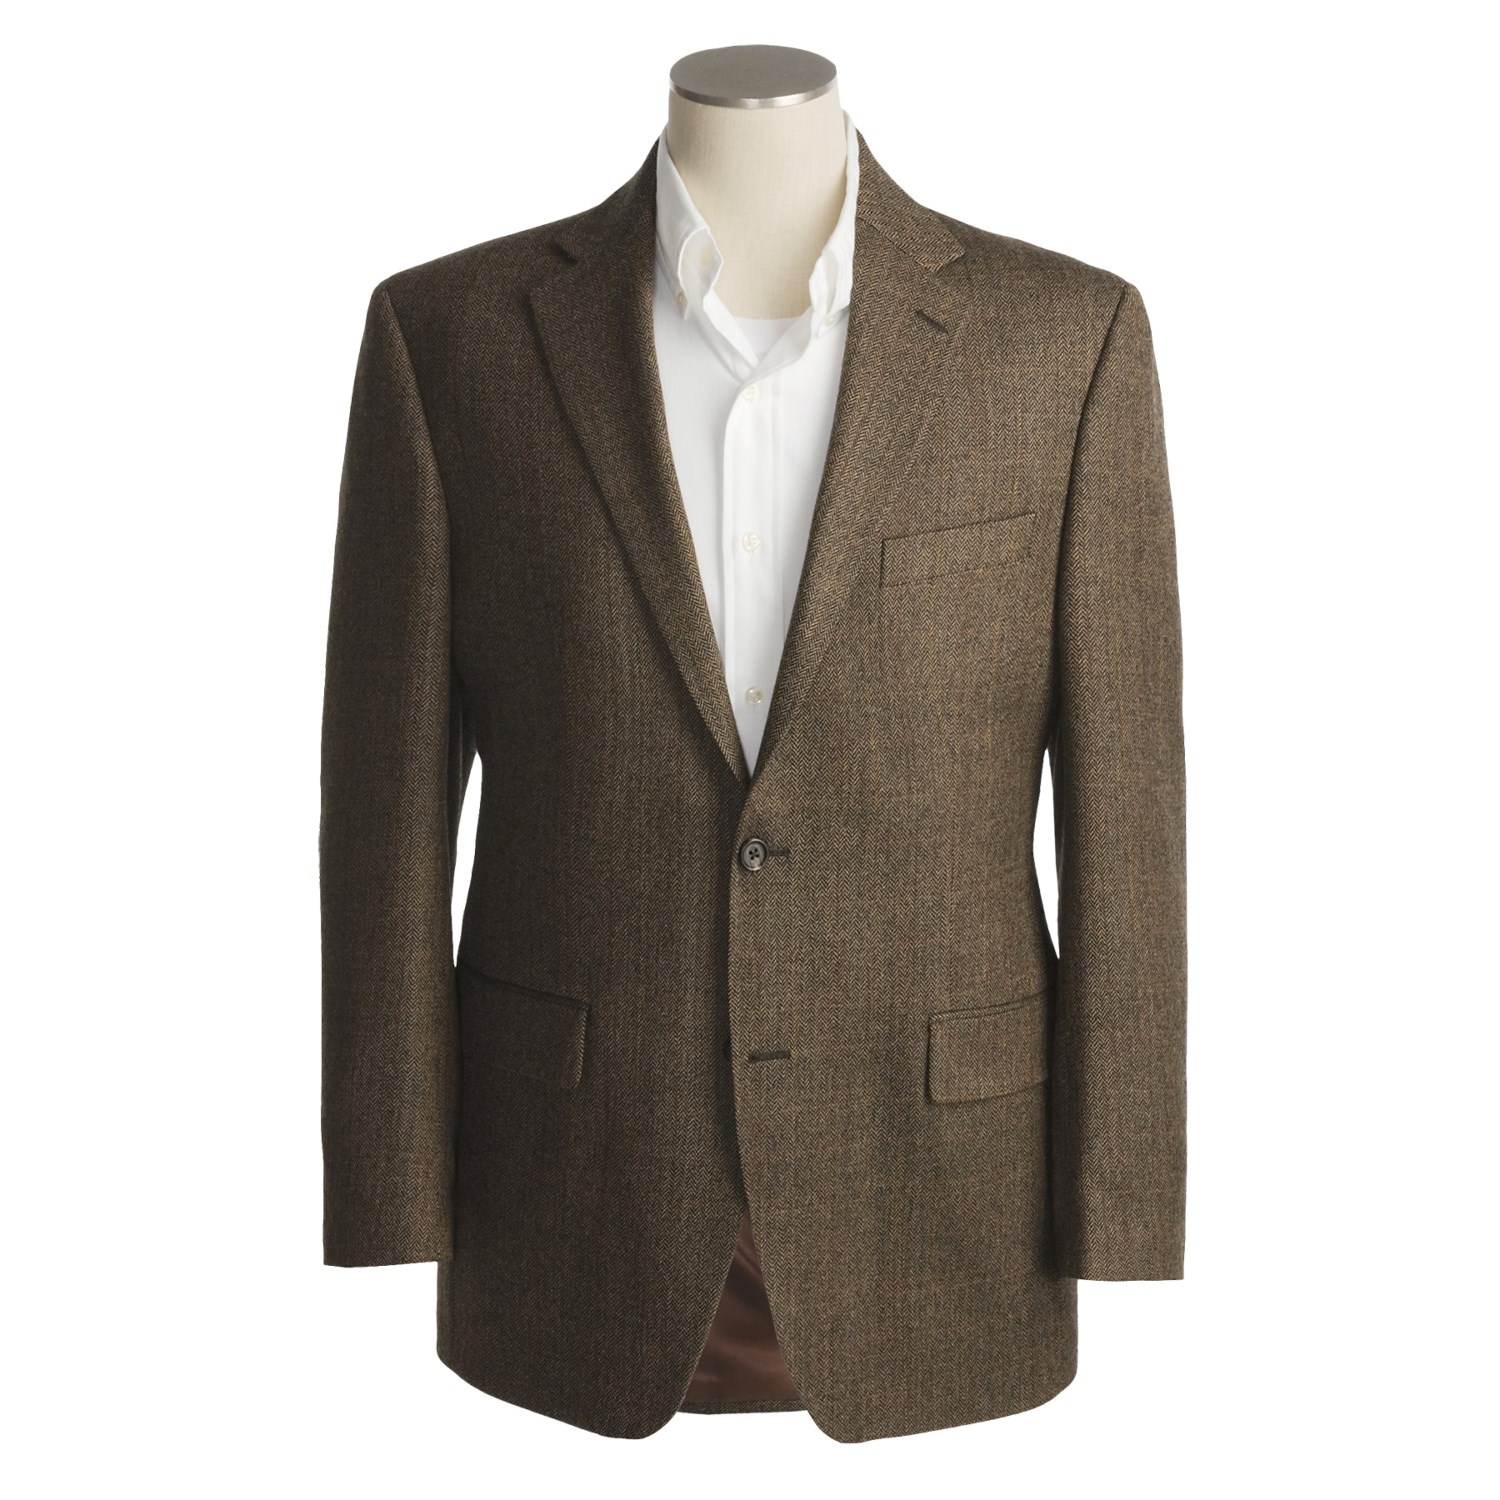 A Circle S Sport Coat is perfect for when it's time to kick your western style up a notch. Made with a polyester and rayon blend, this striking grey herringbone western sport coat features distinctive western yokes on front and back, to go with spade flap pockets near the hem.